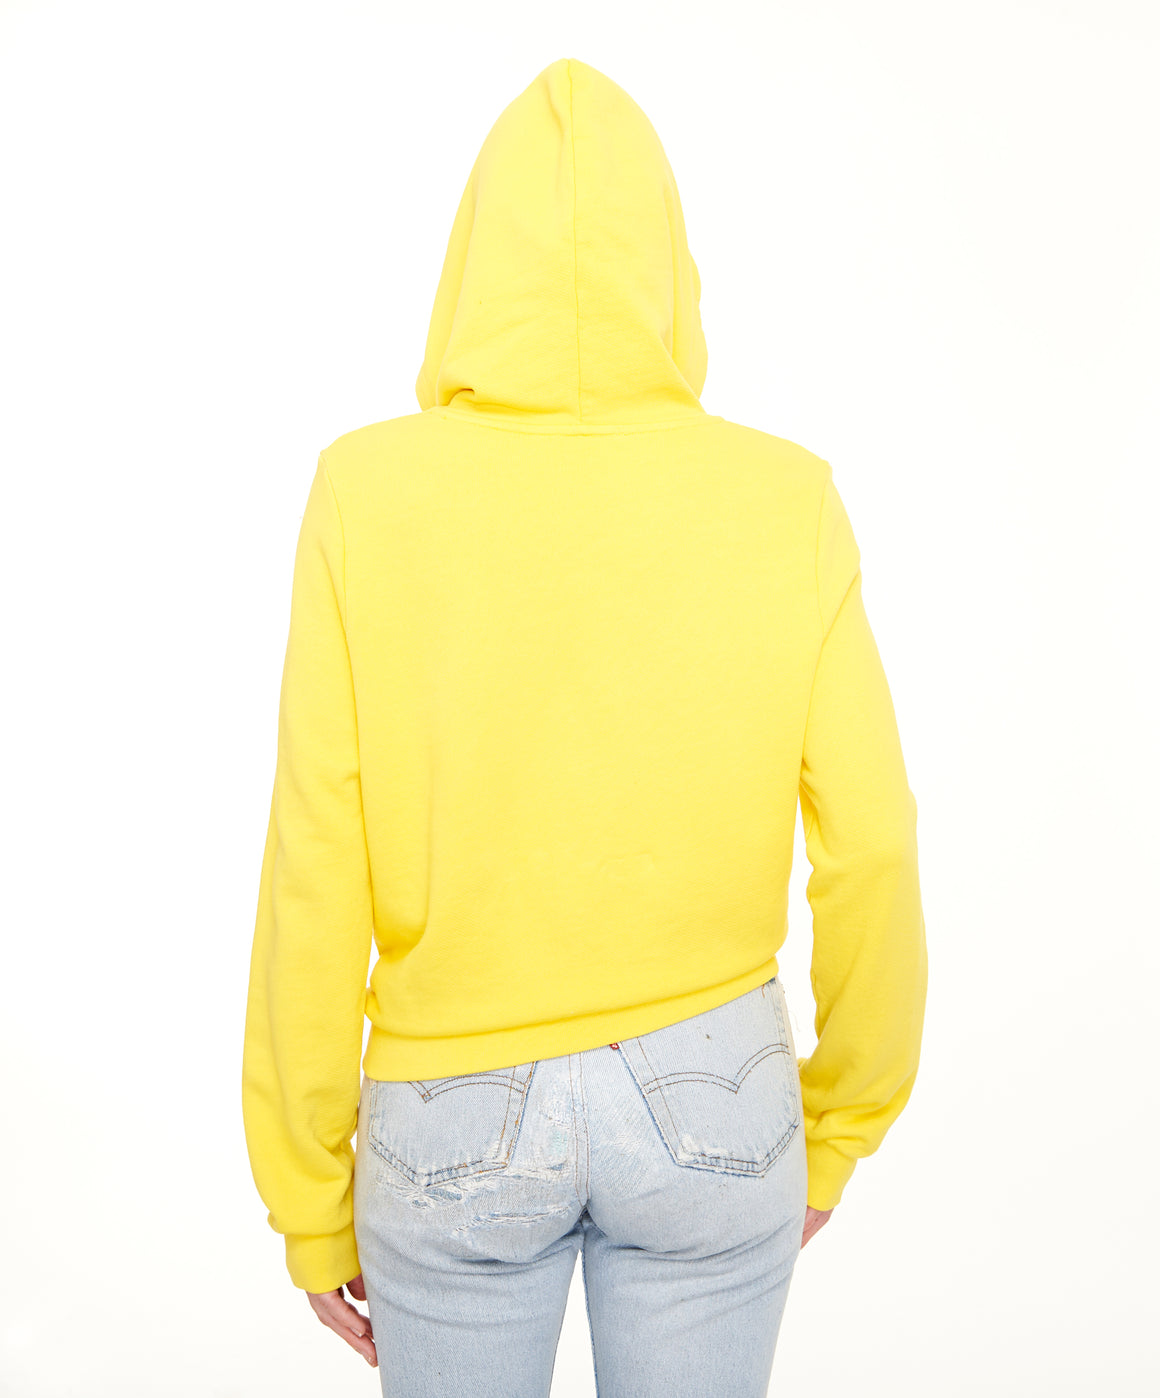 REPEL Clothing - Wear Your Voice!:Legal Alien Women's Crop Hoodie - REPEL Clothing, XS / Yellow